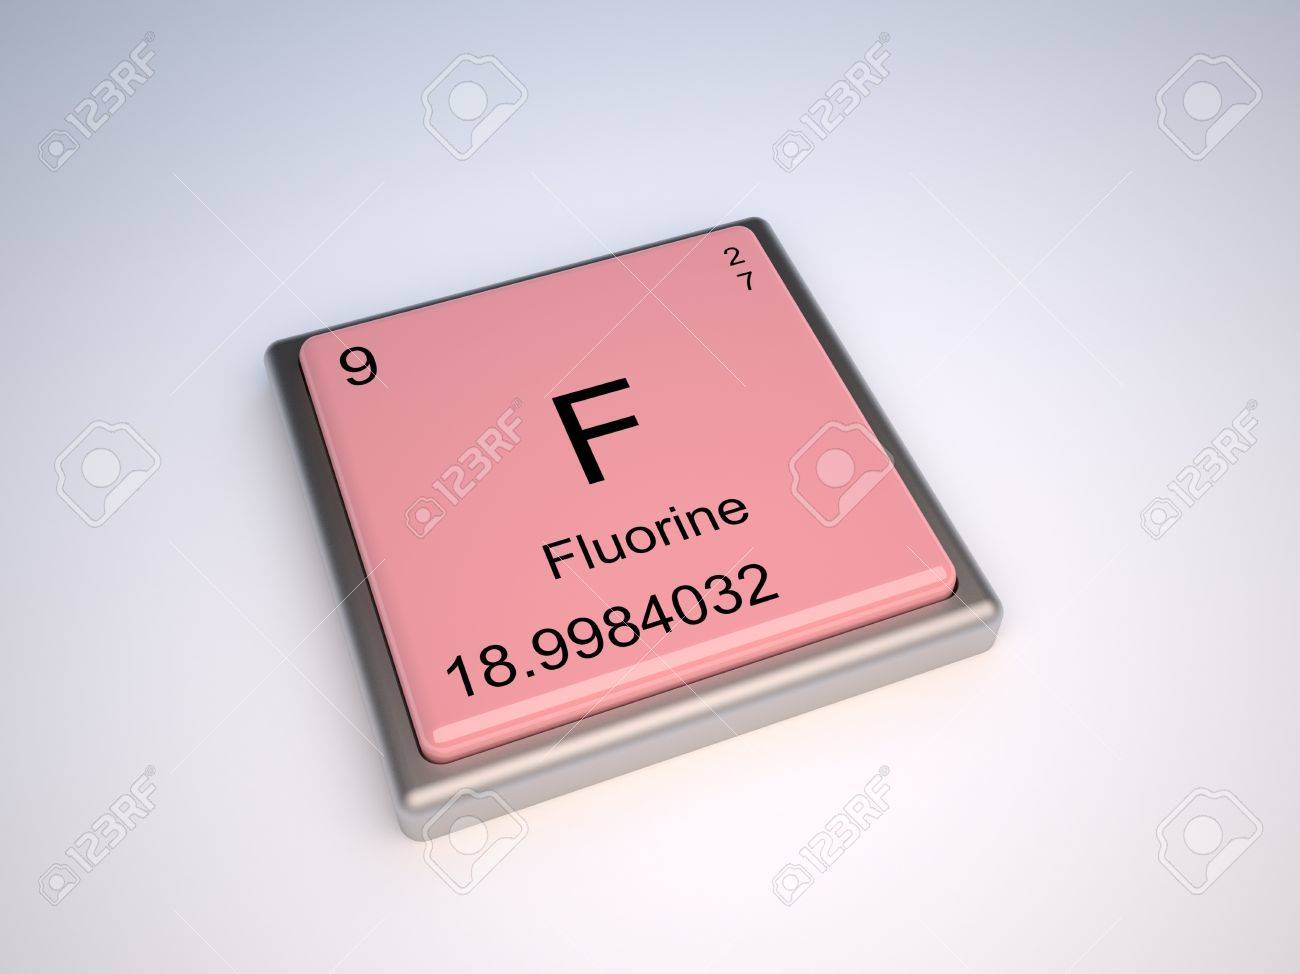 Fluorine chemical element of the periodic table with symbol f fluorine chemical element of the periodic table with symbol f iupac stock photo 9224096 urtaz Choice Image